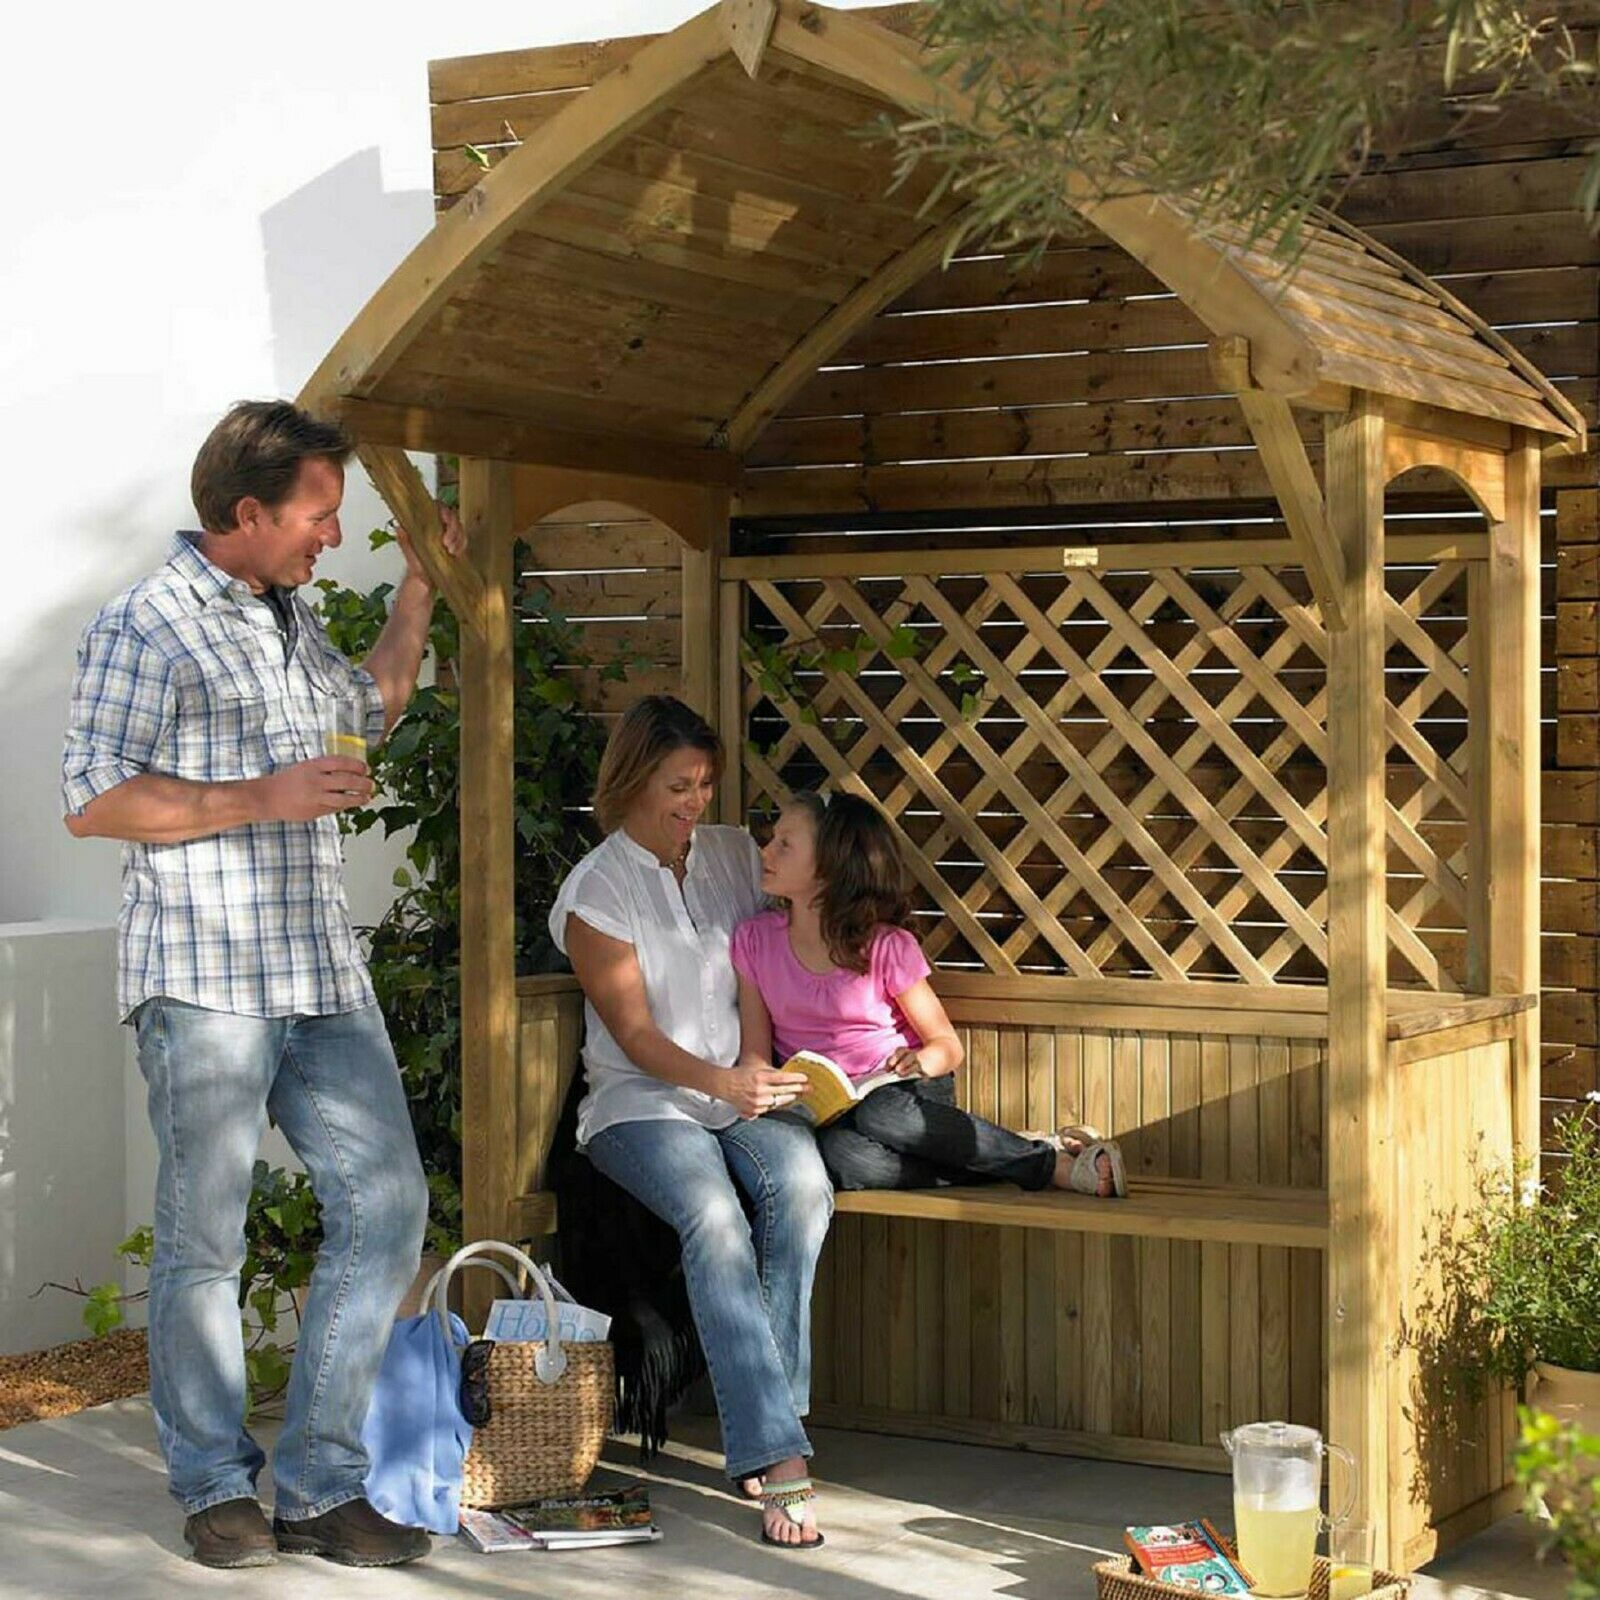 Arbour Seat in 2020 Arbour seat, Softwood, Garden seating